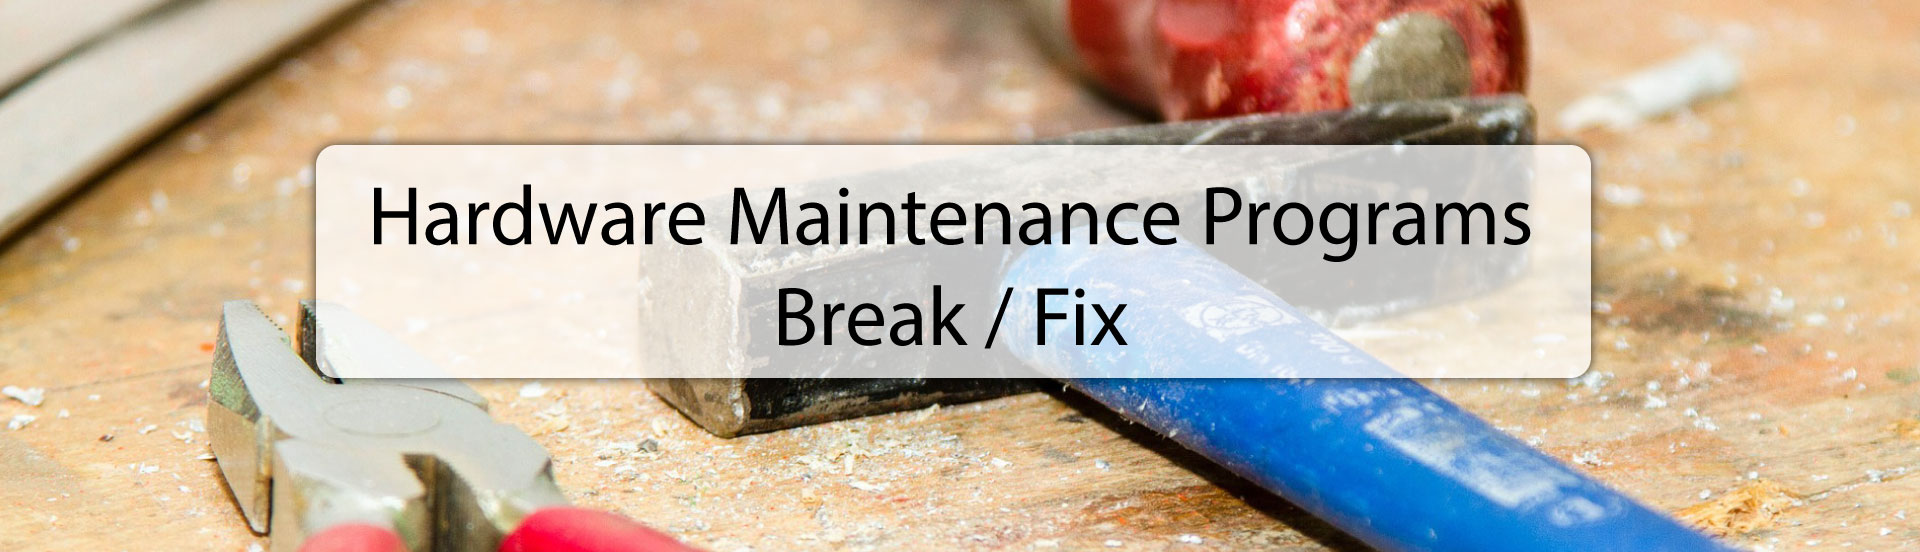 hardware maintenance - break / fix